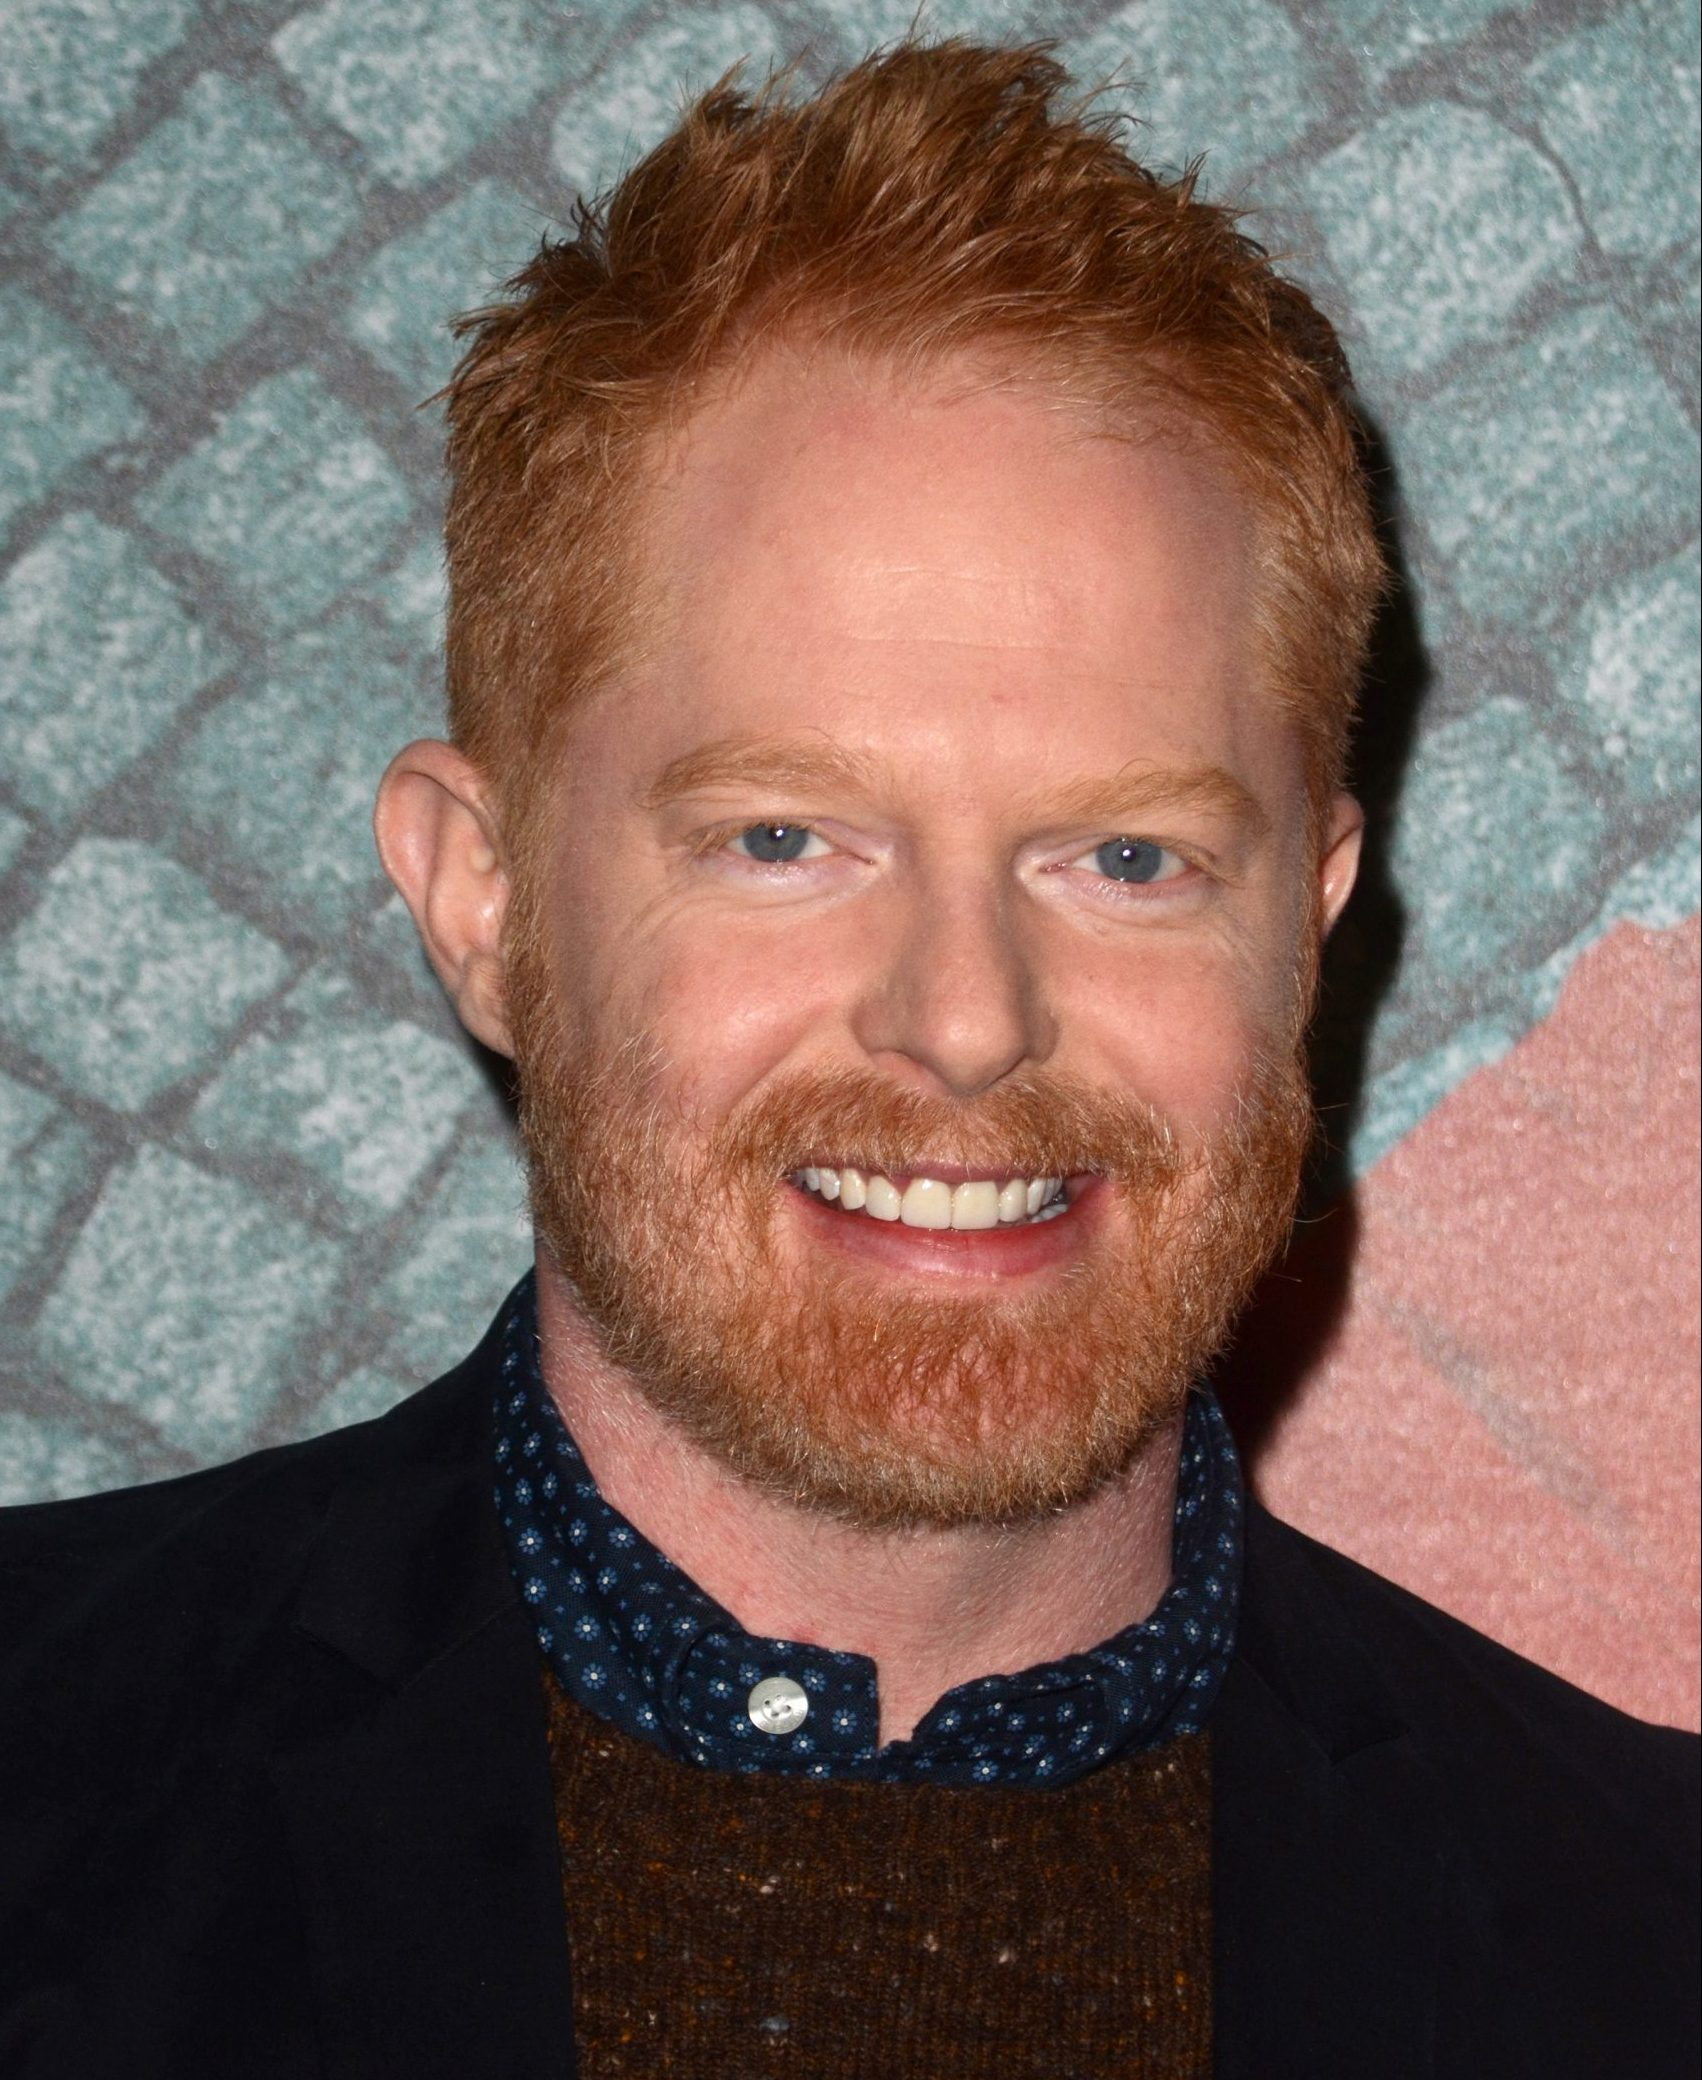 Jesse Tyler Ferguson wears a black shirt and has red hair and facial hair. He's smiling at a red carpet event.